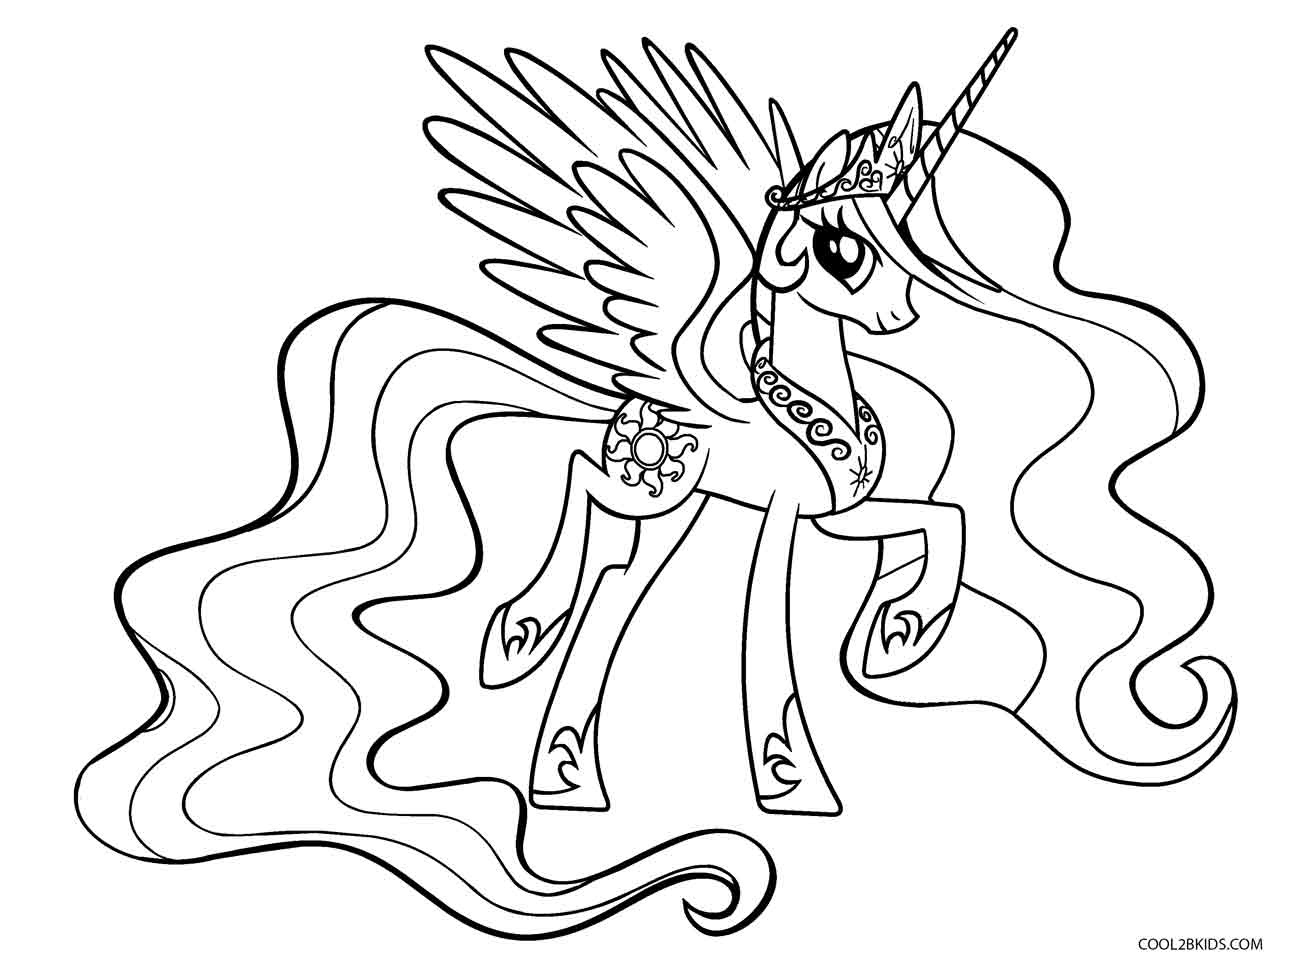 Free Printable My Little Pony Coloring Pages For Kids | Cool2Bkids - Free Printable My Little Pony Coloring Pages